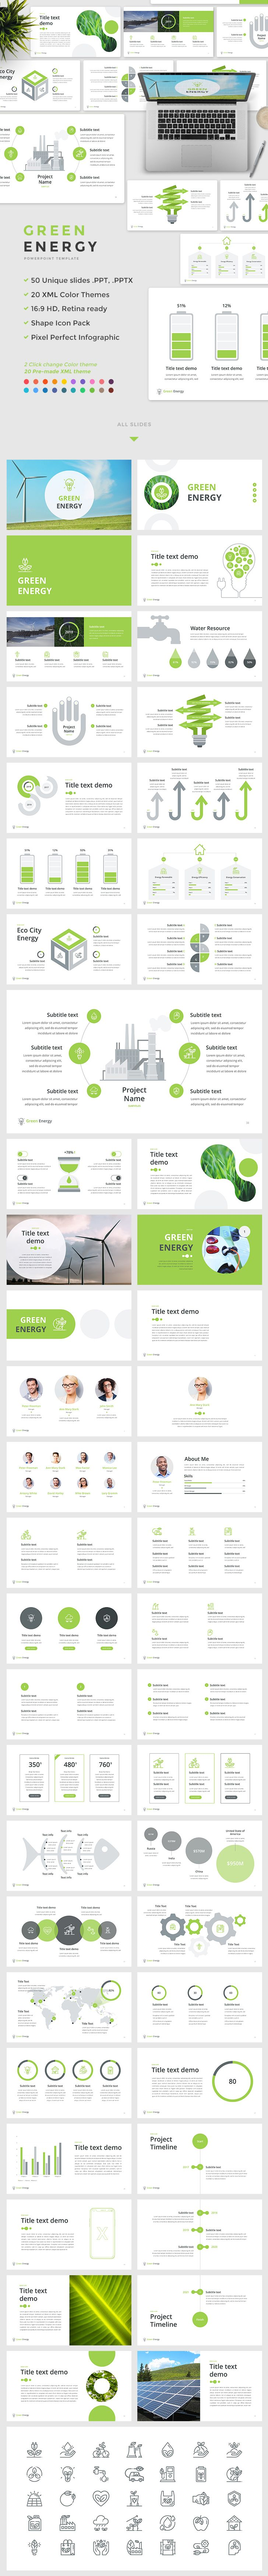 The 25 best powerpoint icon ideas on pinterest power point green energy powerpoint template 50 unique slides ppt pptx 20 pre made color themes xml files pixel perfect infographic shape icon pack no need toneelgroepblik Image collections